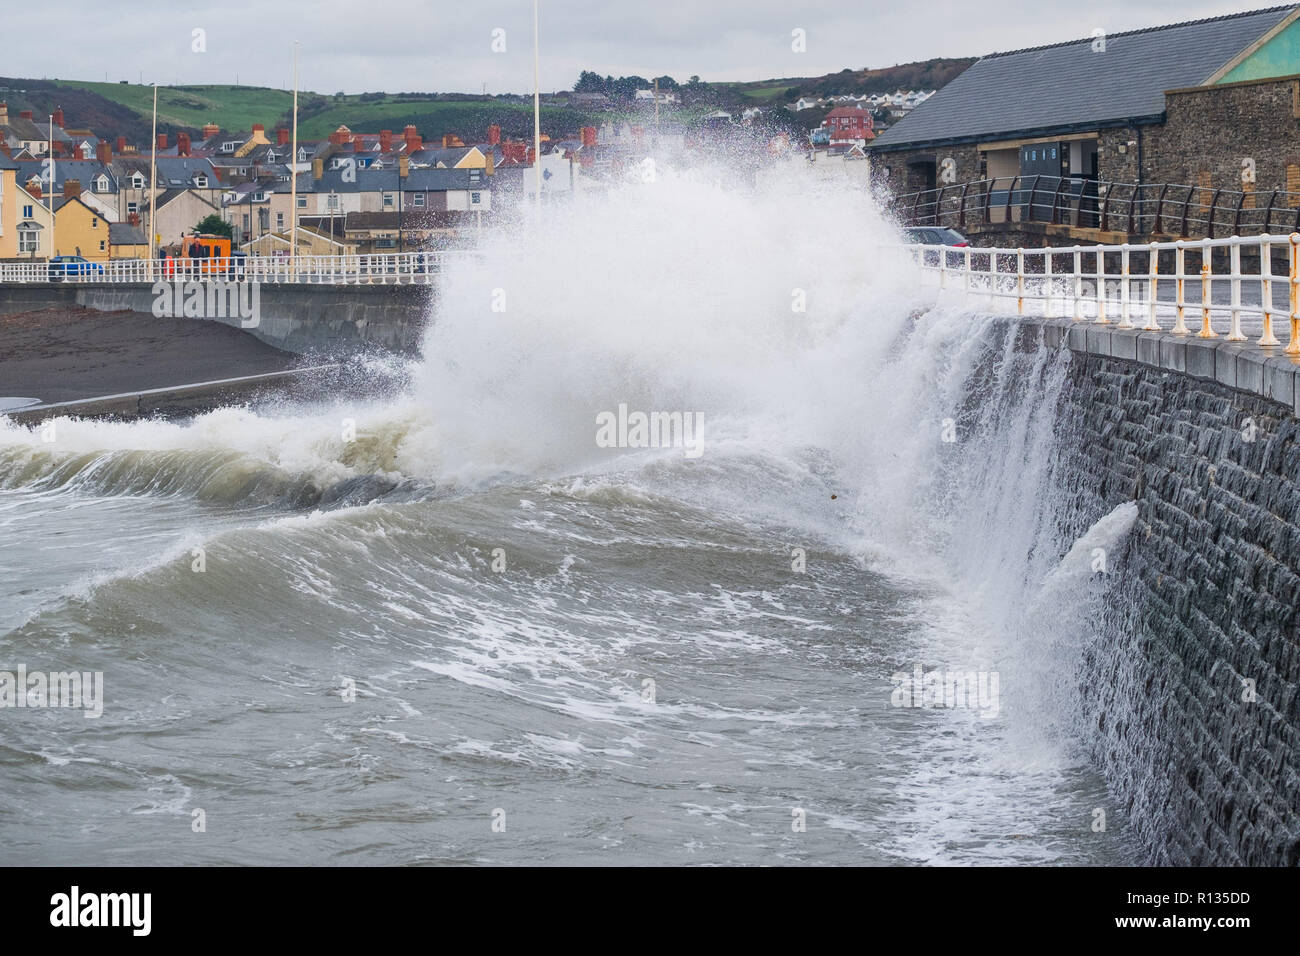 Aberystwyth Wales UK, 9th Nov 2018  UK Weather: At the